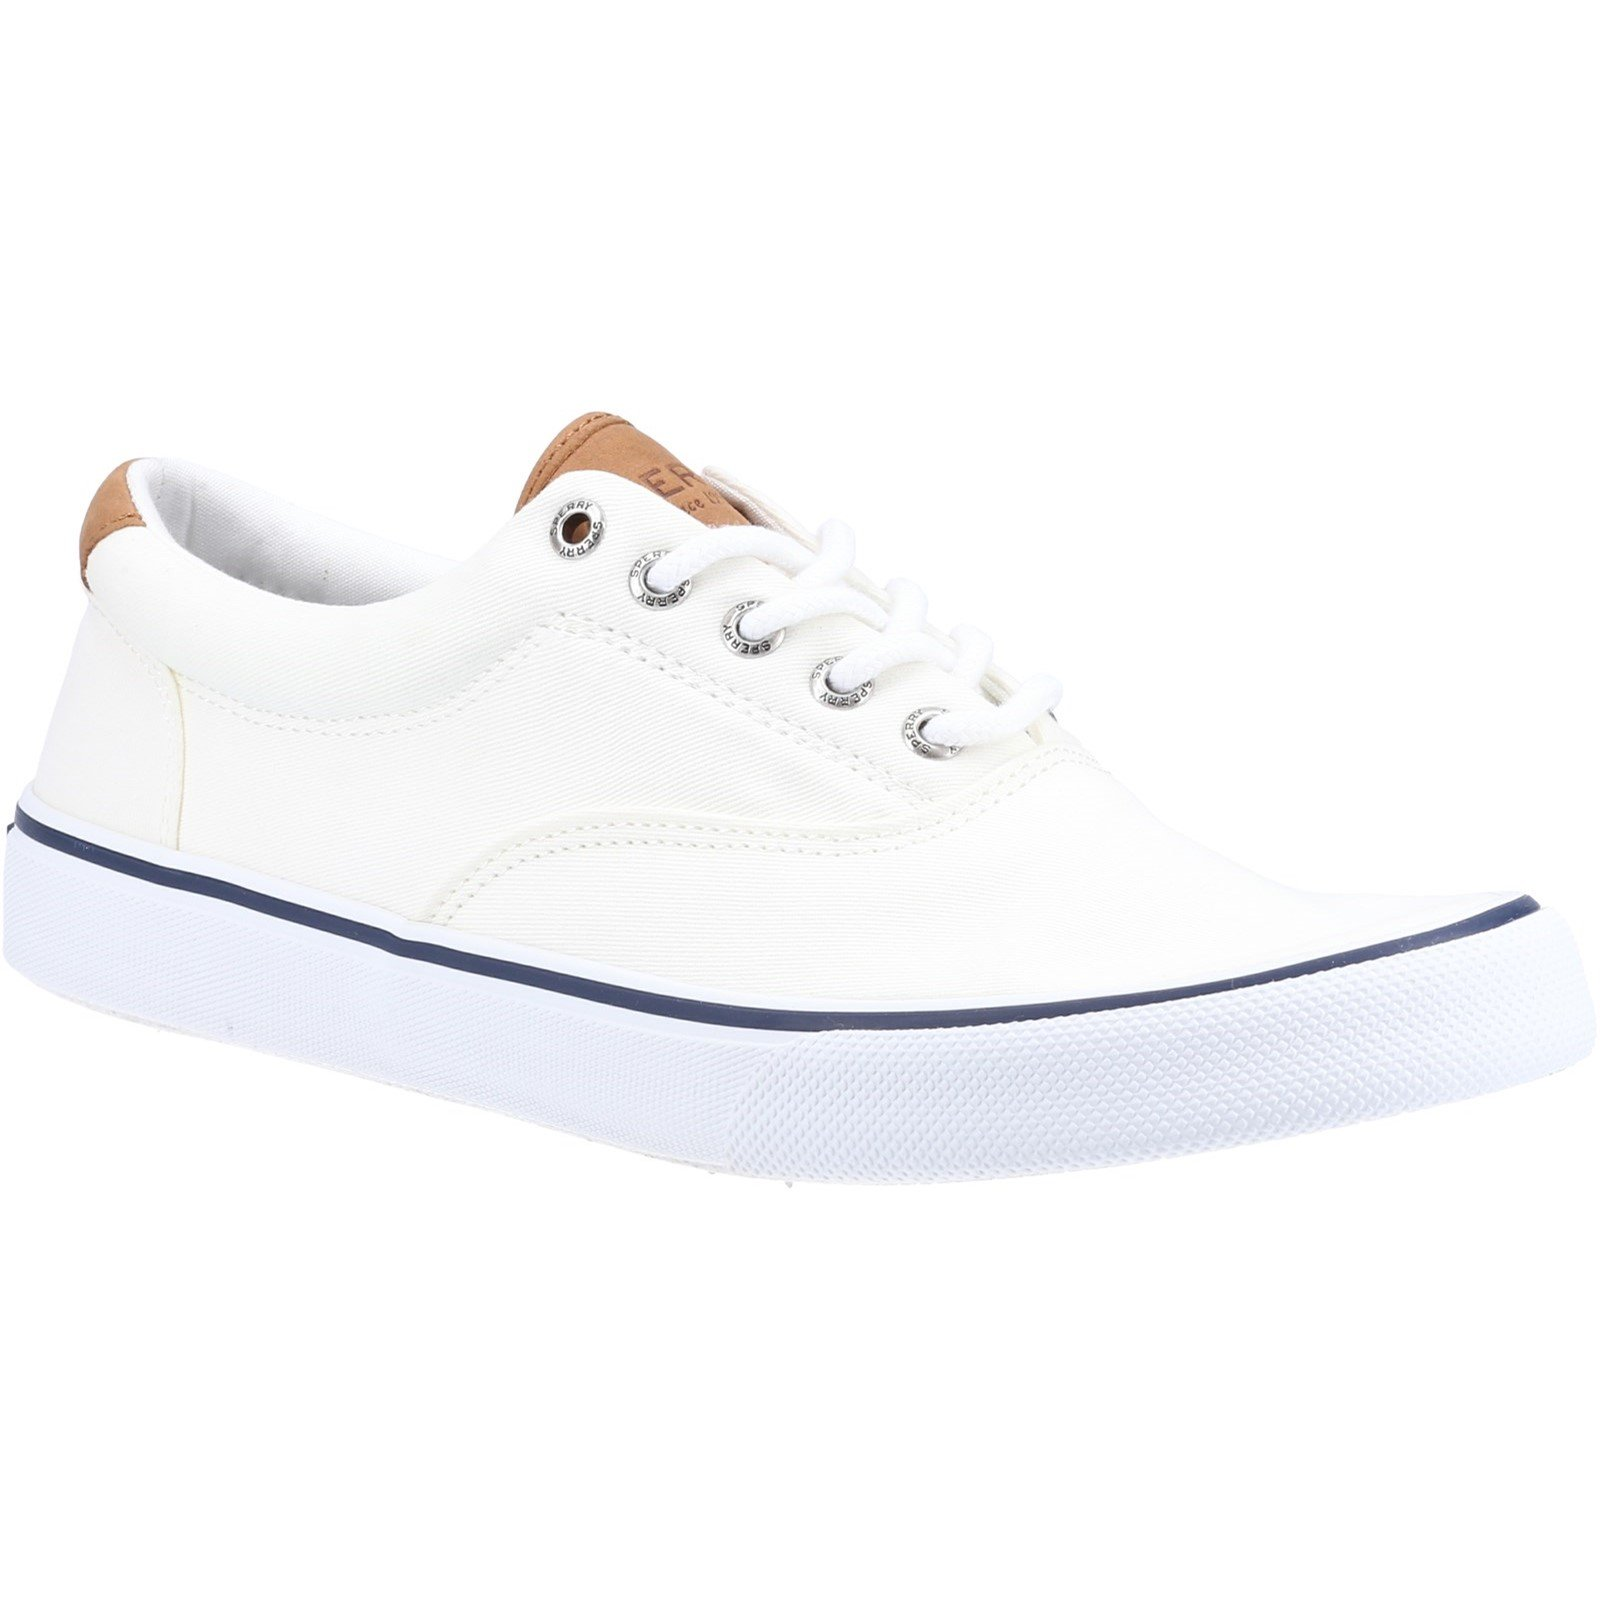 Sperry Men's Striper II CVO Canvas Trainers Various Colours 32397 - Salt Washed White 9